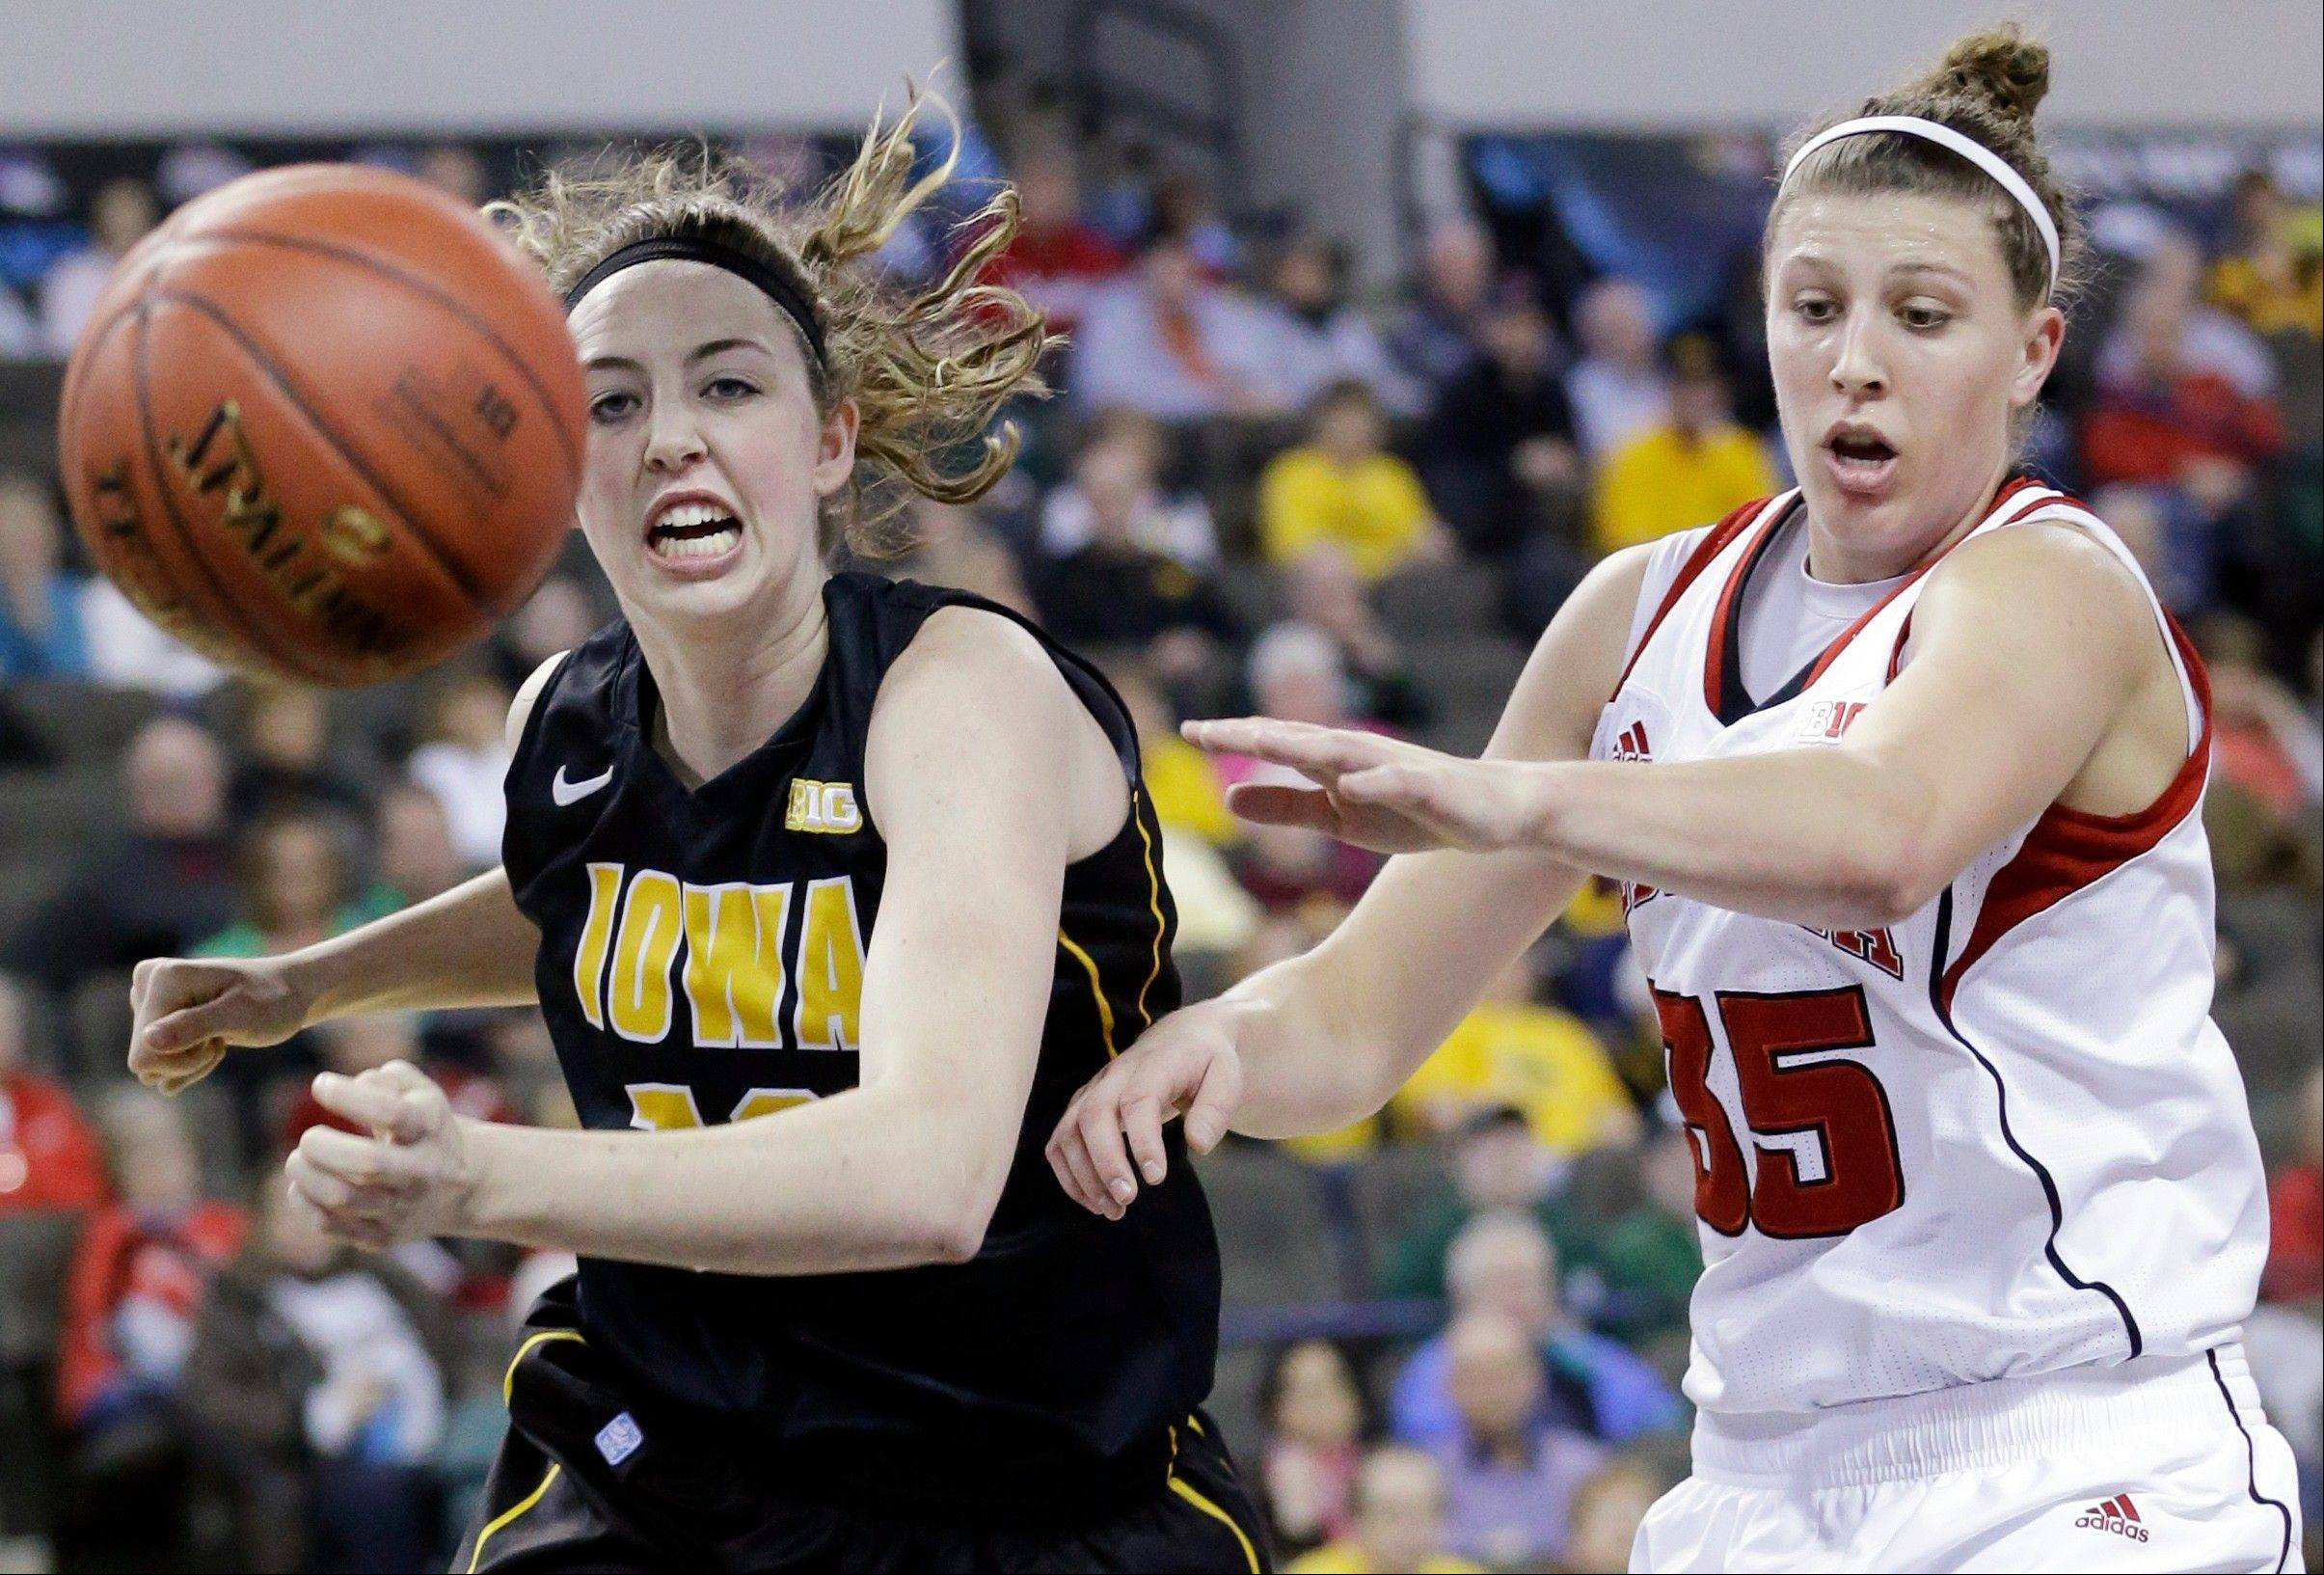 Iowa center Morgan Johnson, left, and Nebraska forward Jordan Hooper chase the ball during the first half of an NCAA college basketball game in the Big Ten Conference tournament in Hoffman Estates, Ill., on Friday, March 8, 2013.